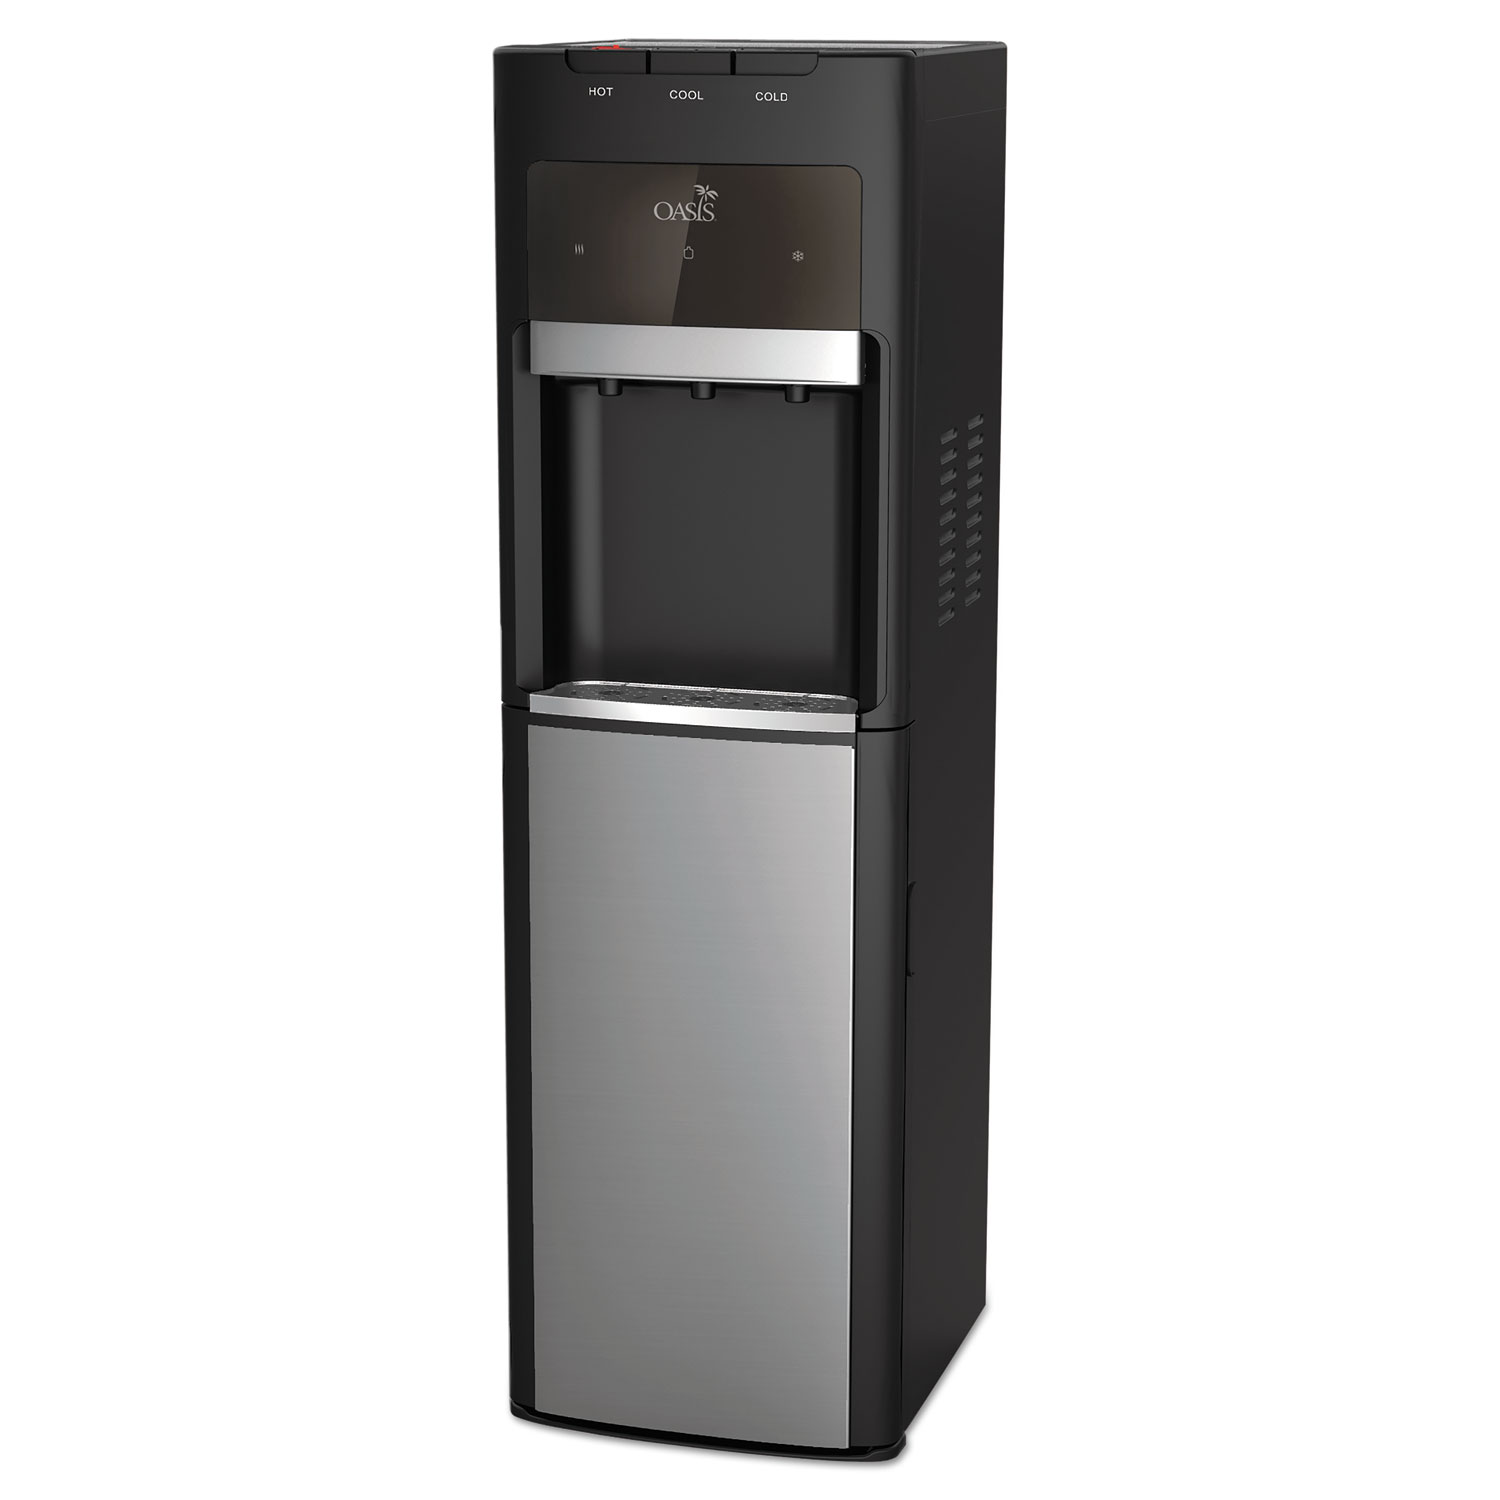 Mirage Floorstand Convertible Hot N Cold Water Cooler, 13 dia. x 41 h, Black